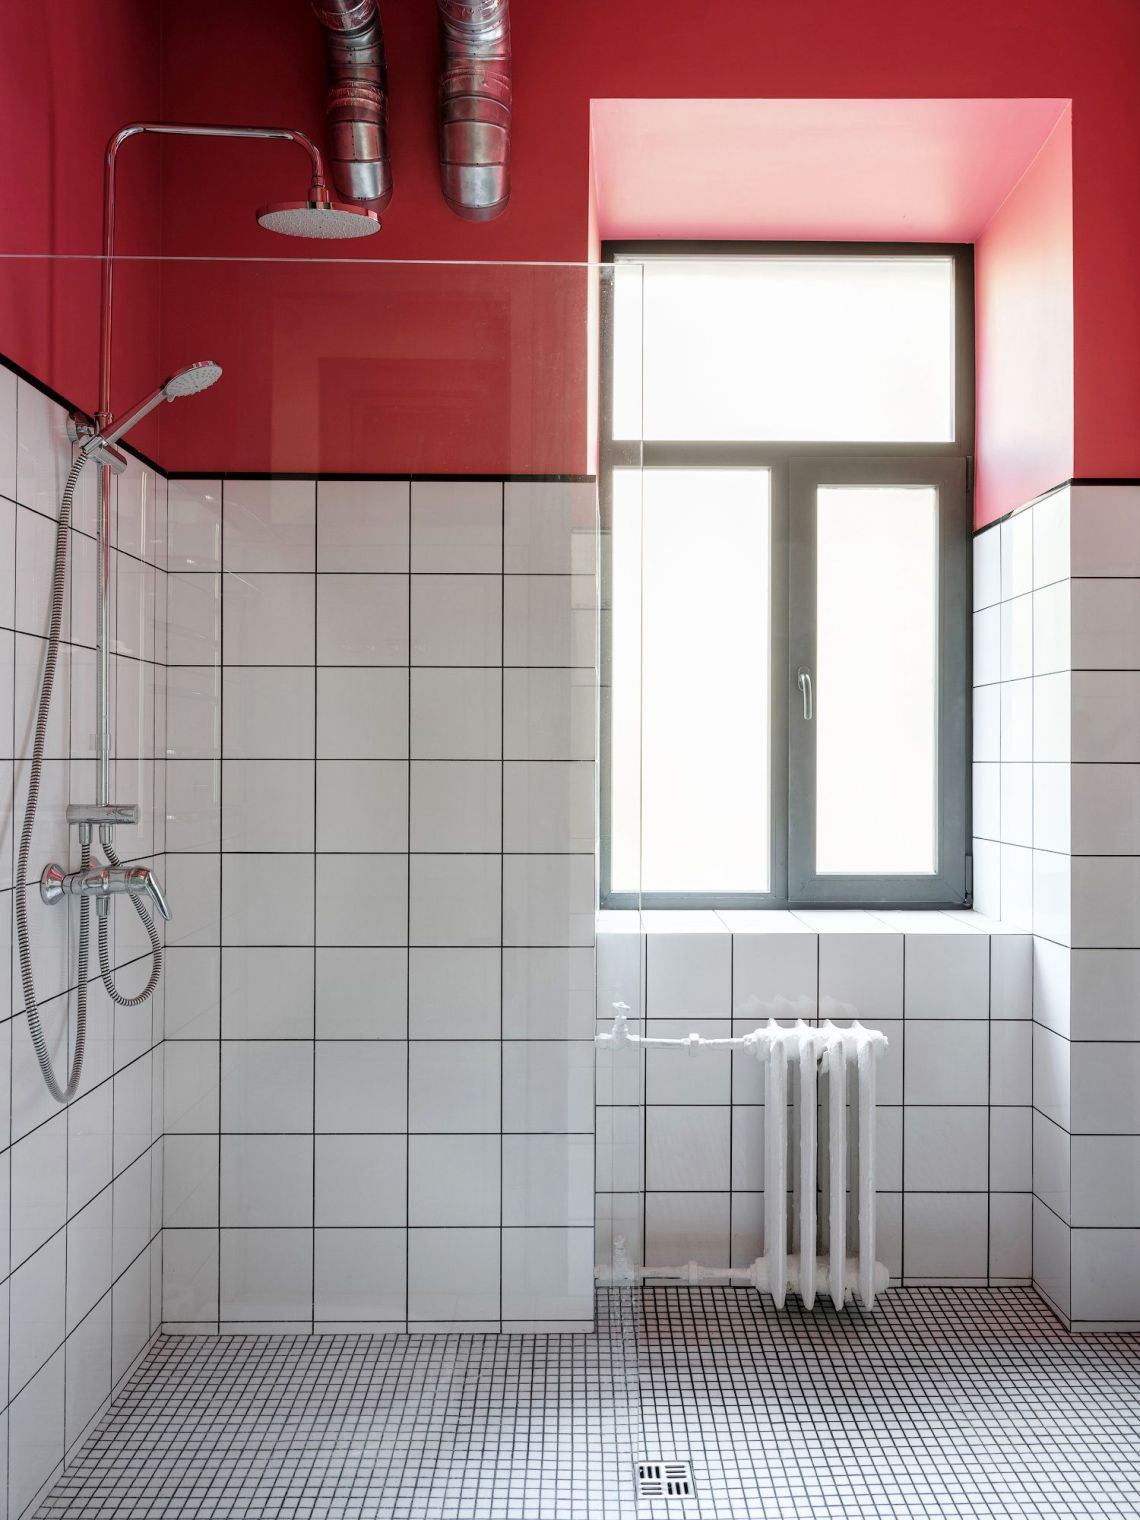 How to decorate a small bathroom and still save space ...